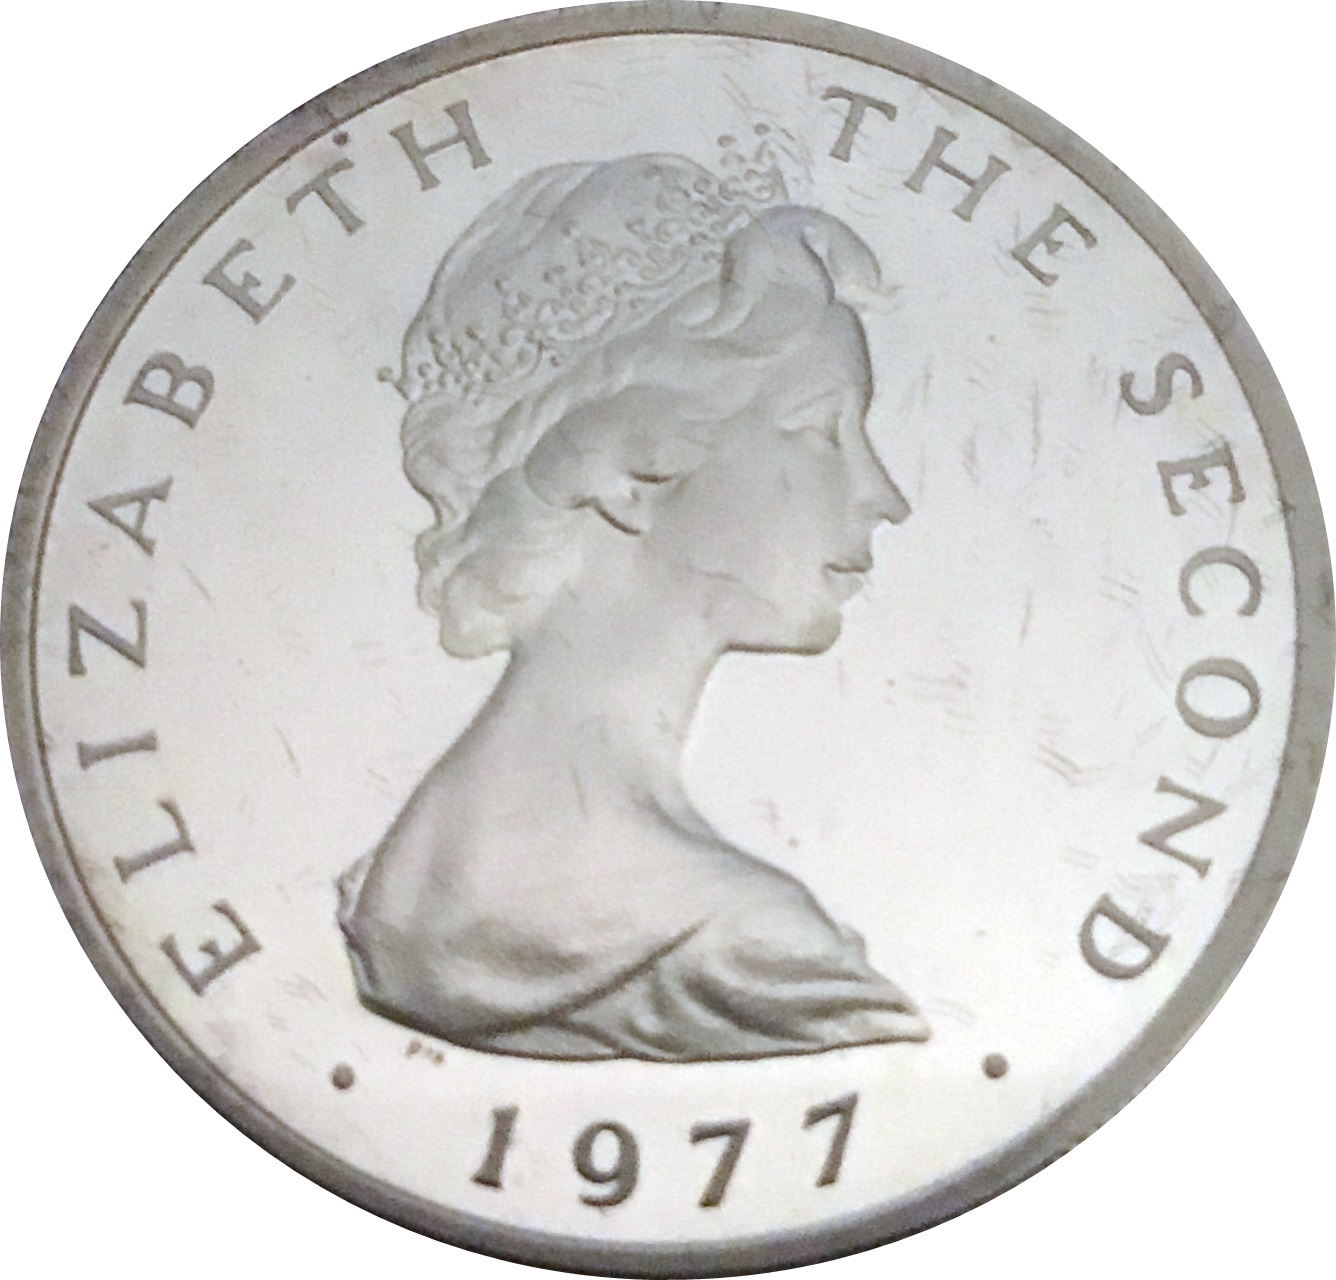 Coins of All Nations Isle of Man 10 pence 1978 UNC